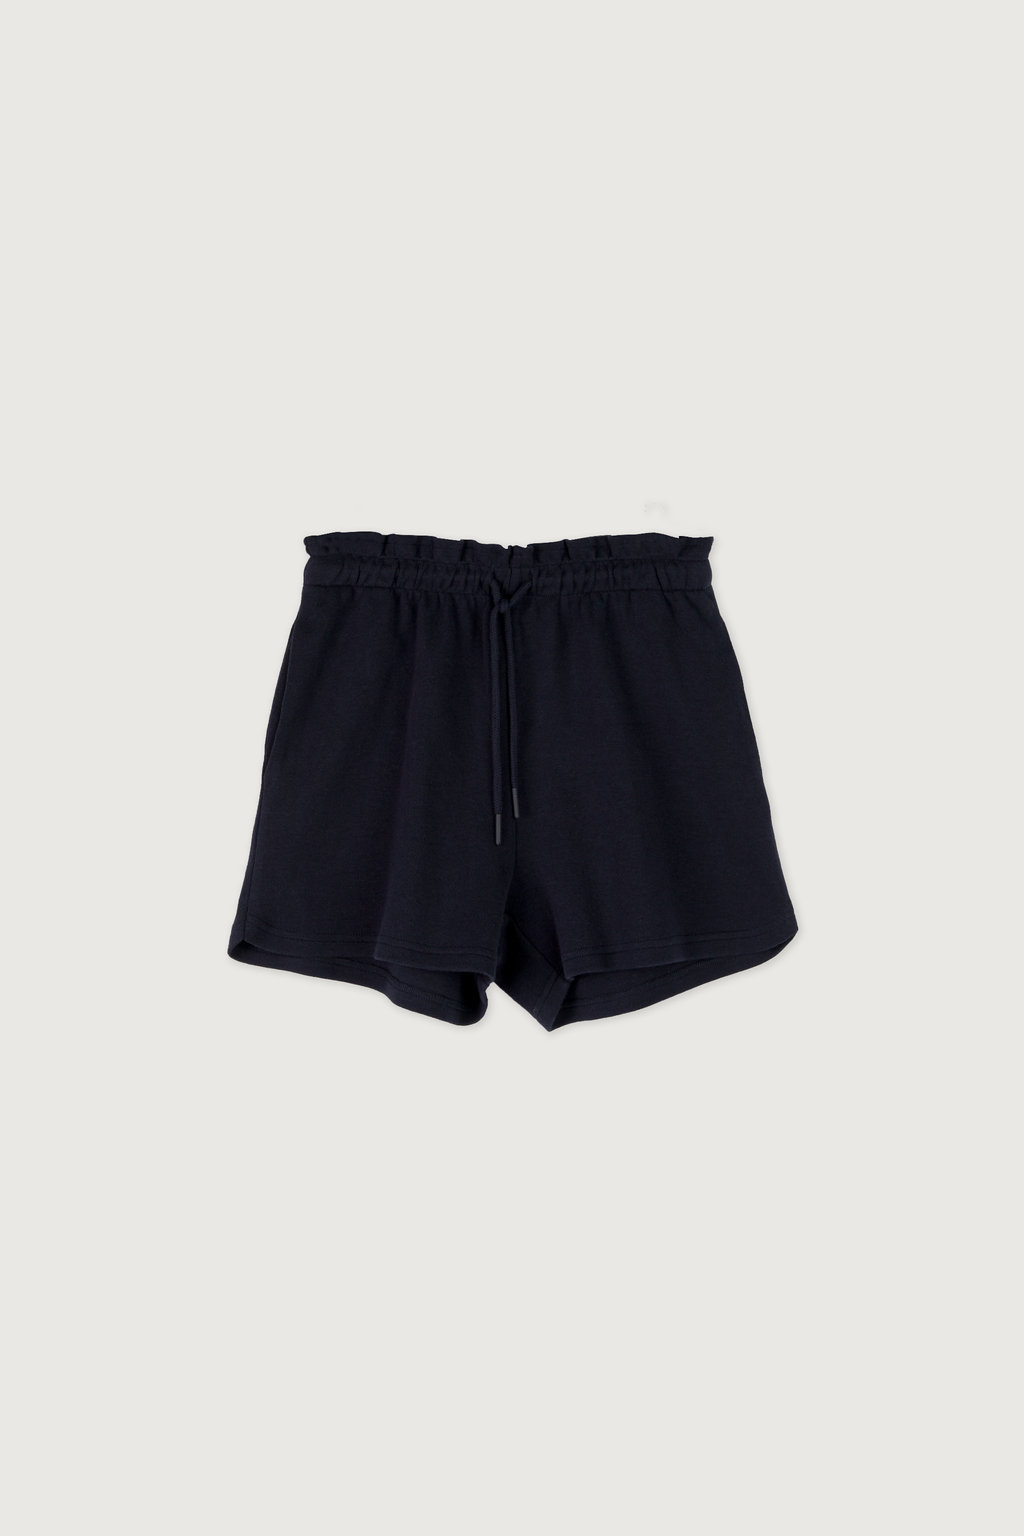 Short 3237 Dark Navy 7